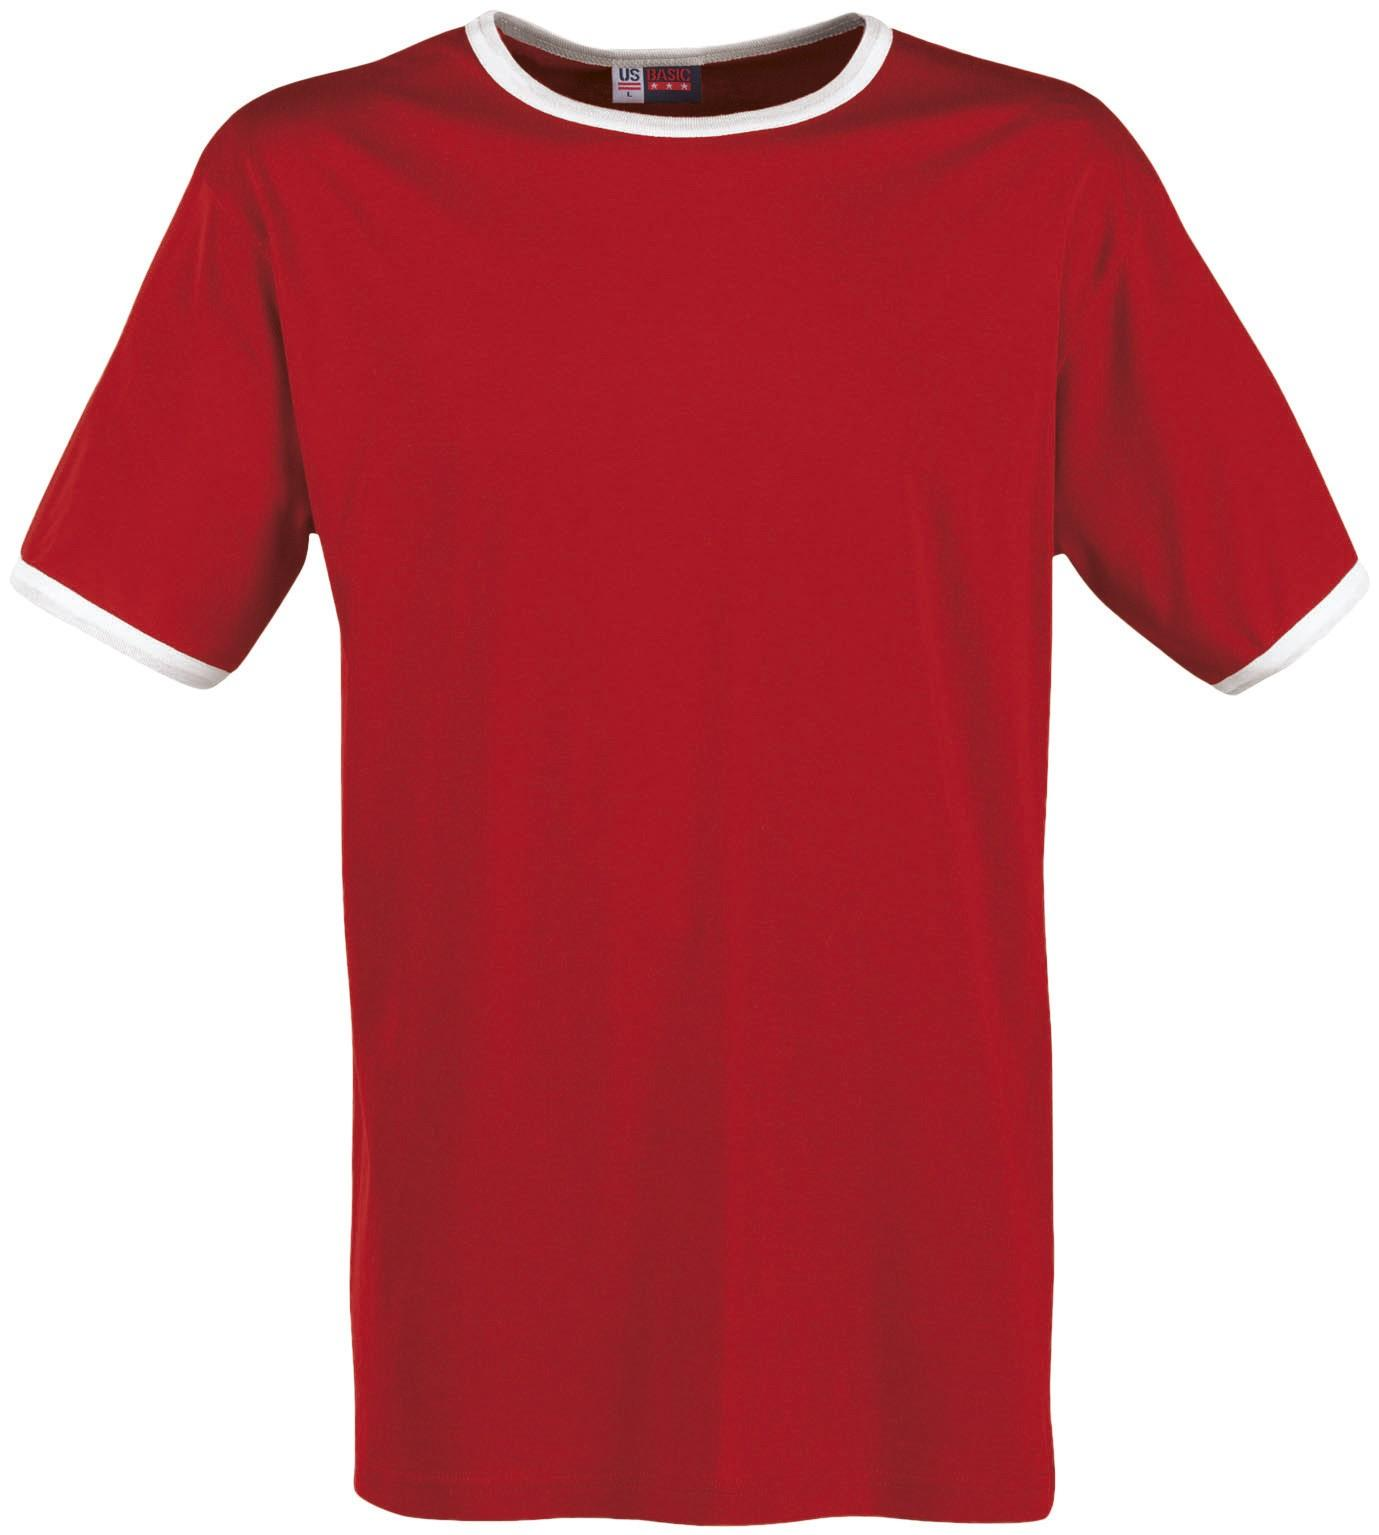 Mens Adelaide Contrast T-shirt - Red Only